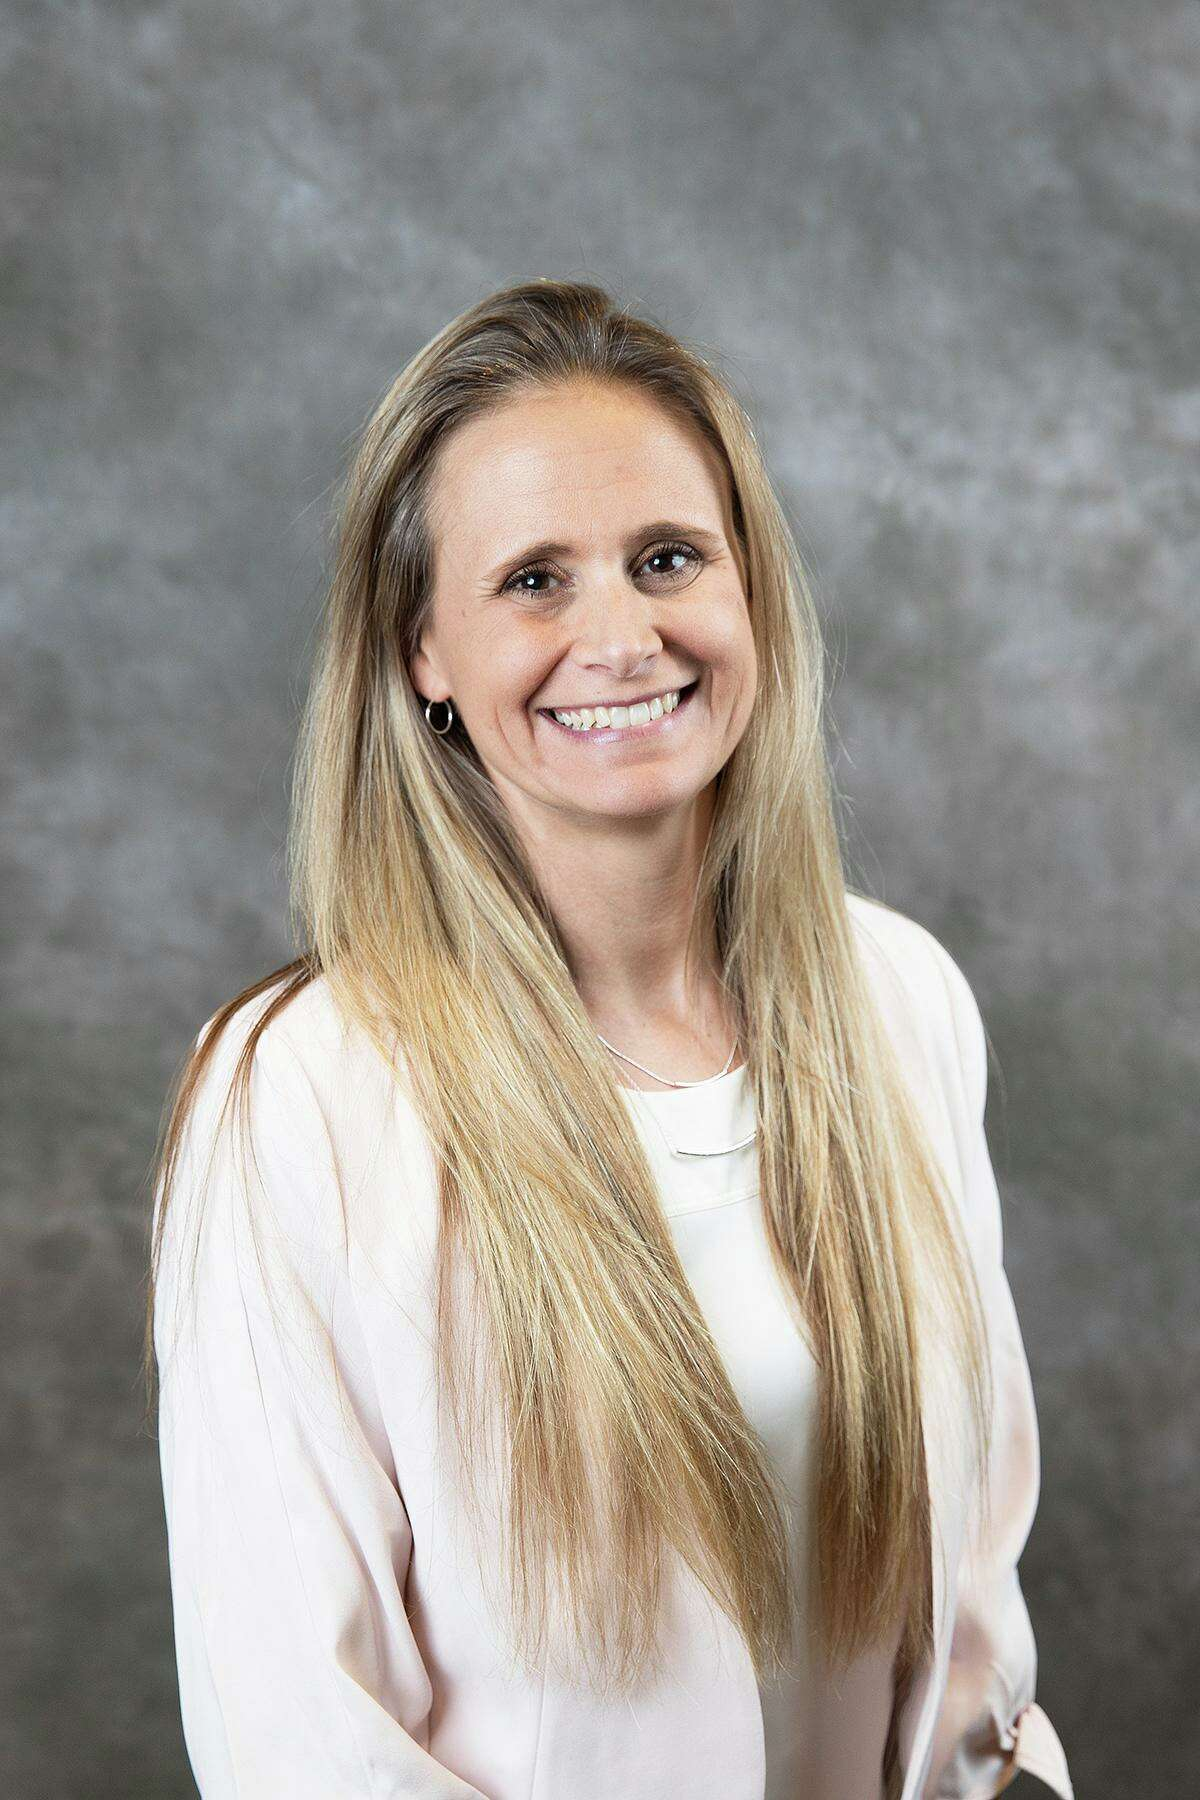 Lone Star College-University Park geology professor Dr. Christa Spears will be teaching the new meteorology classes this fall semester.